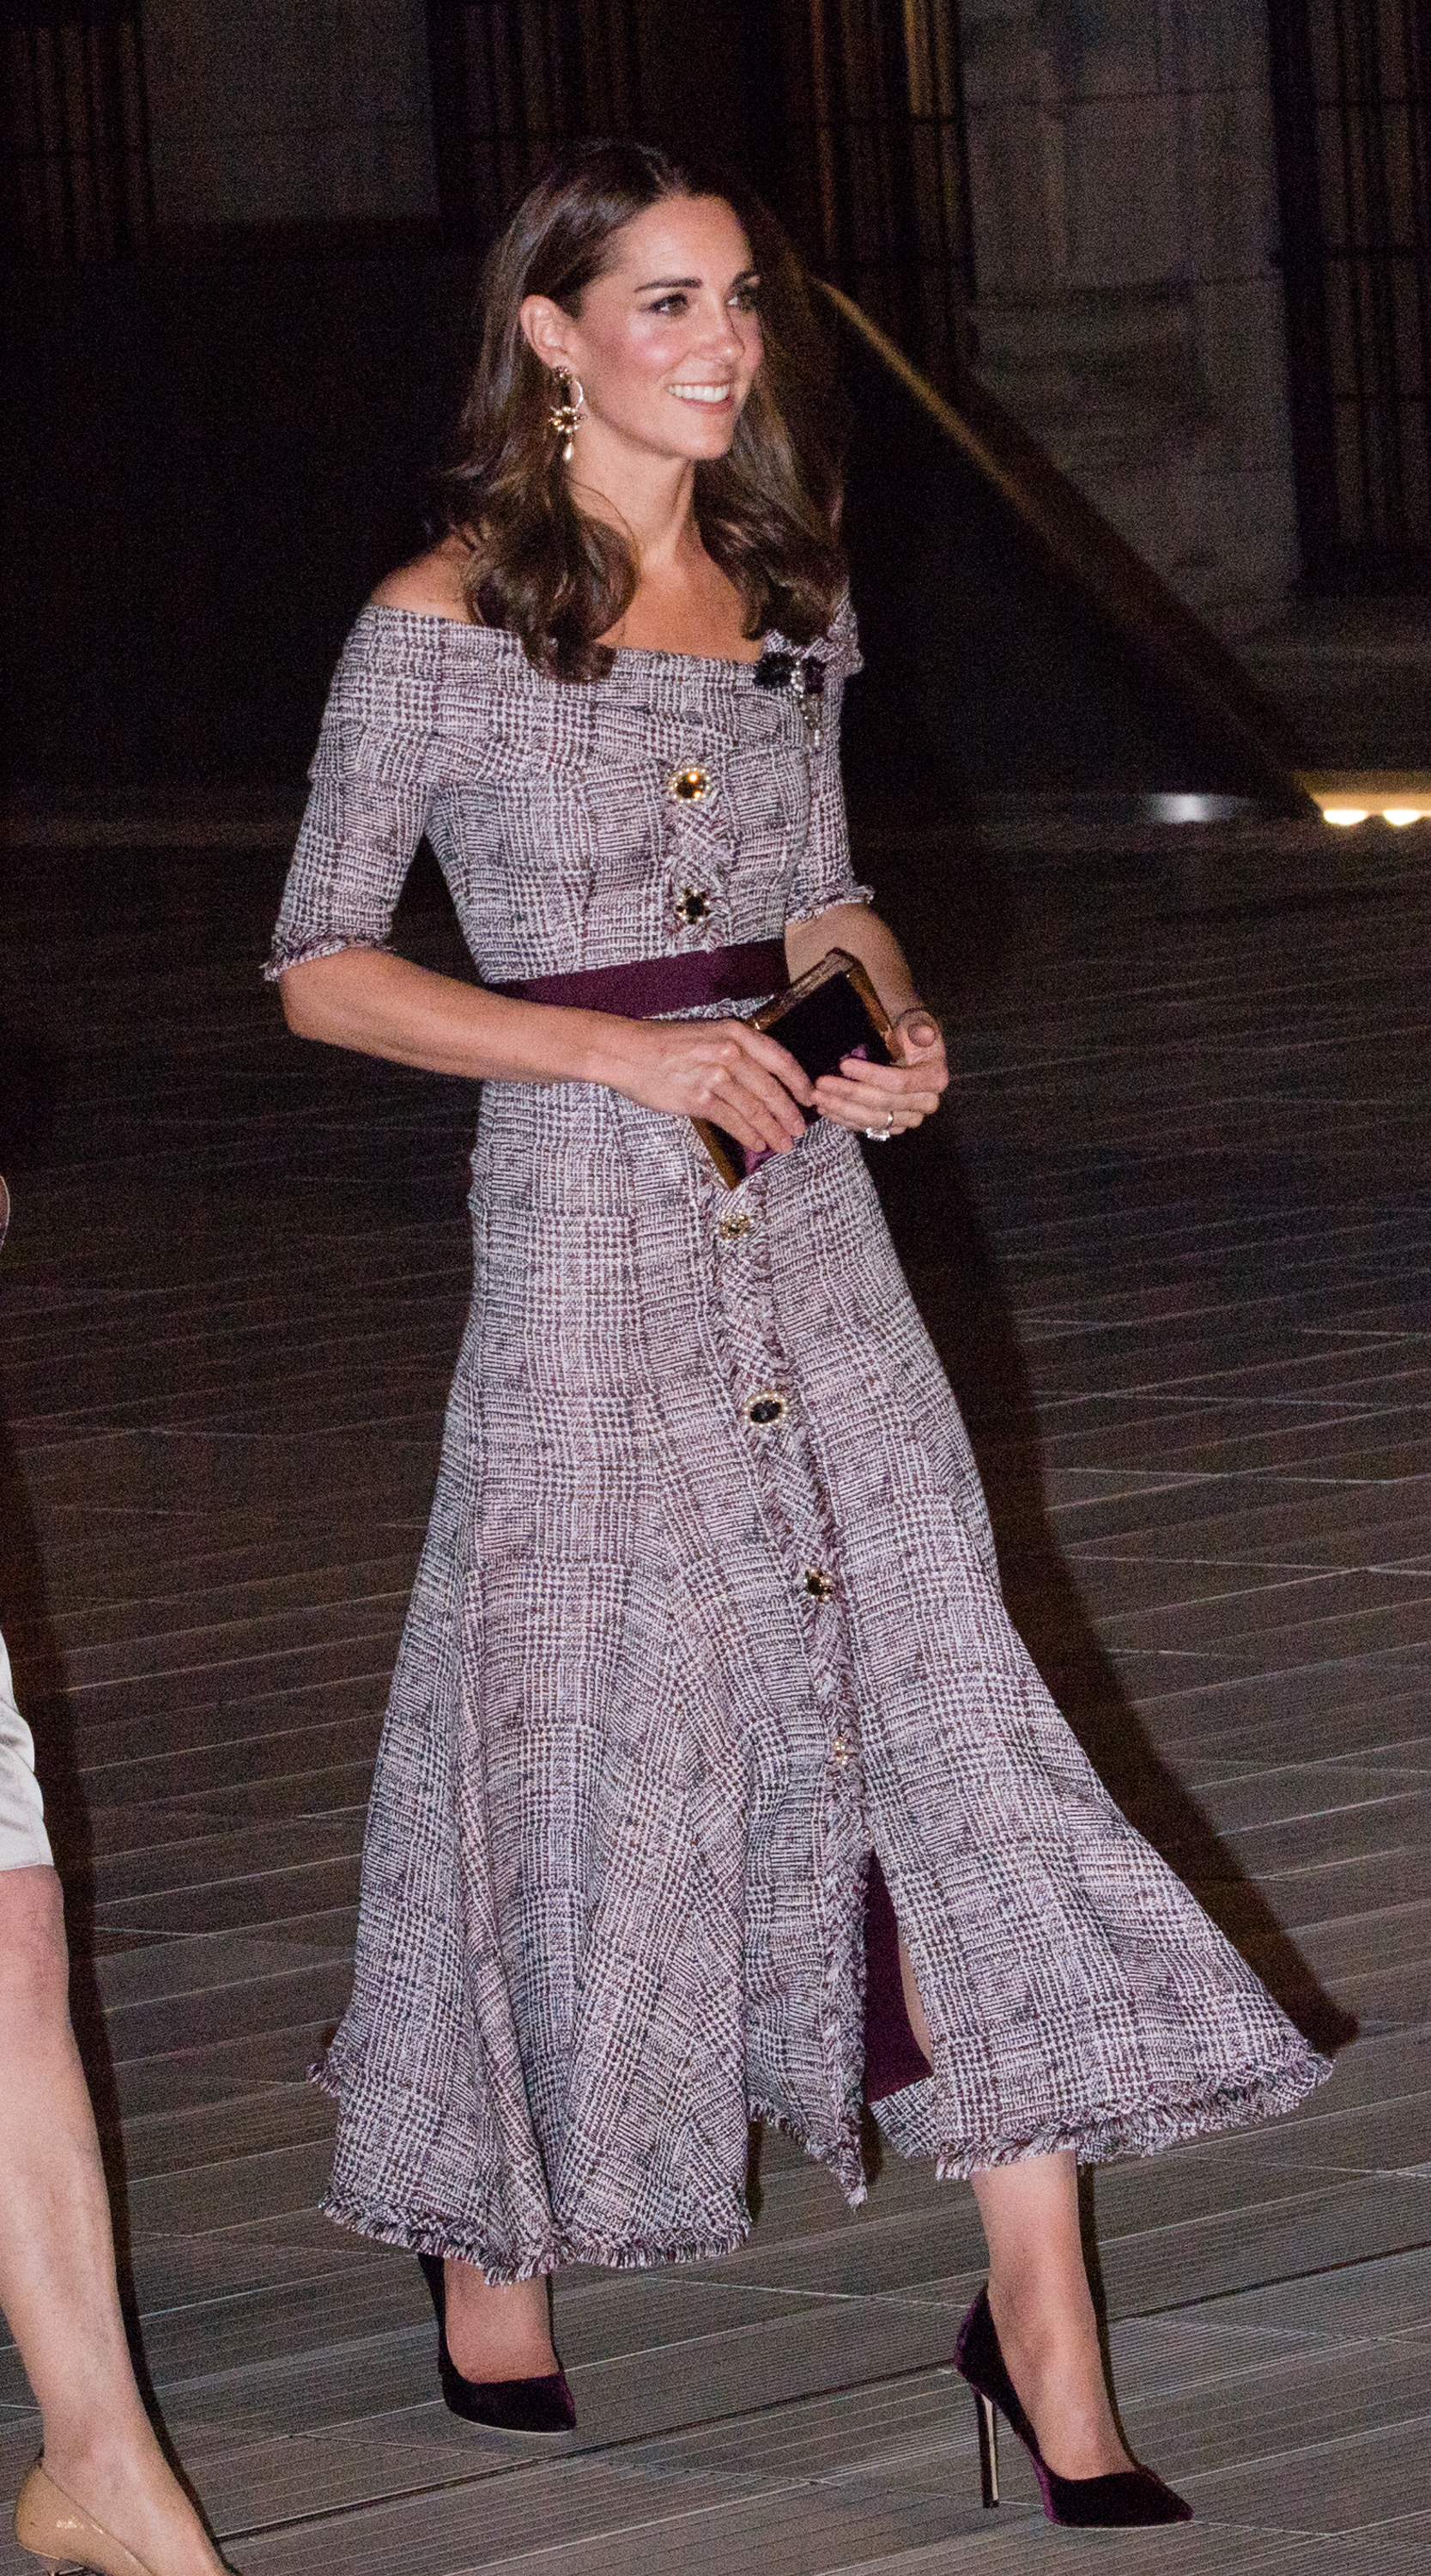 LONDON, ENGLAND - OCTOBER 10:  Catherine, Duchess of Cambridge attends the opening of the V&A Photography Centre at Victoria & Albert Museum on October 10, 2018 in London, England.  The Duchess of Cambridge became the Royal Patron of the V&A in March 2018 and this is her first visit in the role.  (Photo by Samir Hussein/Samir Hussein/WireImage)